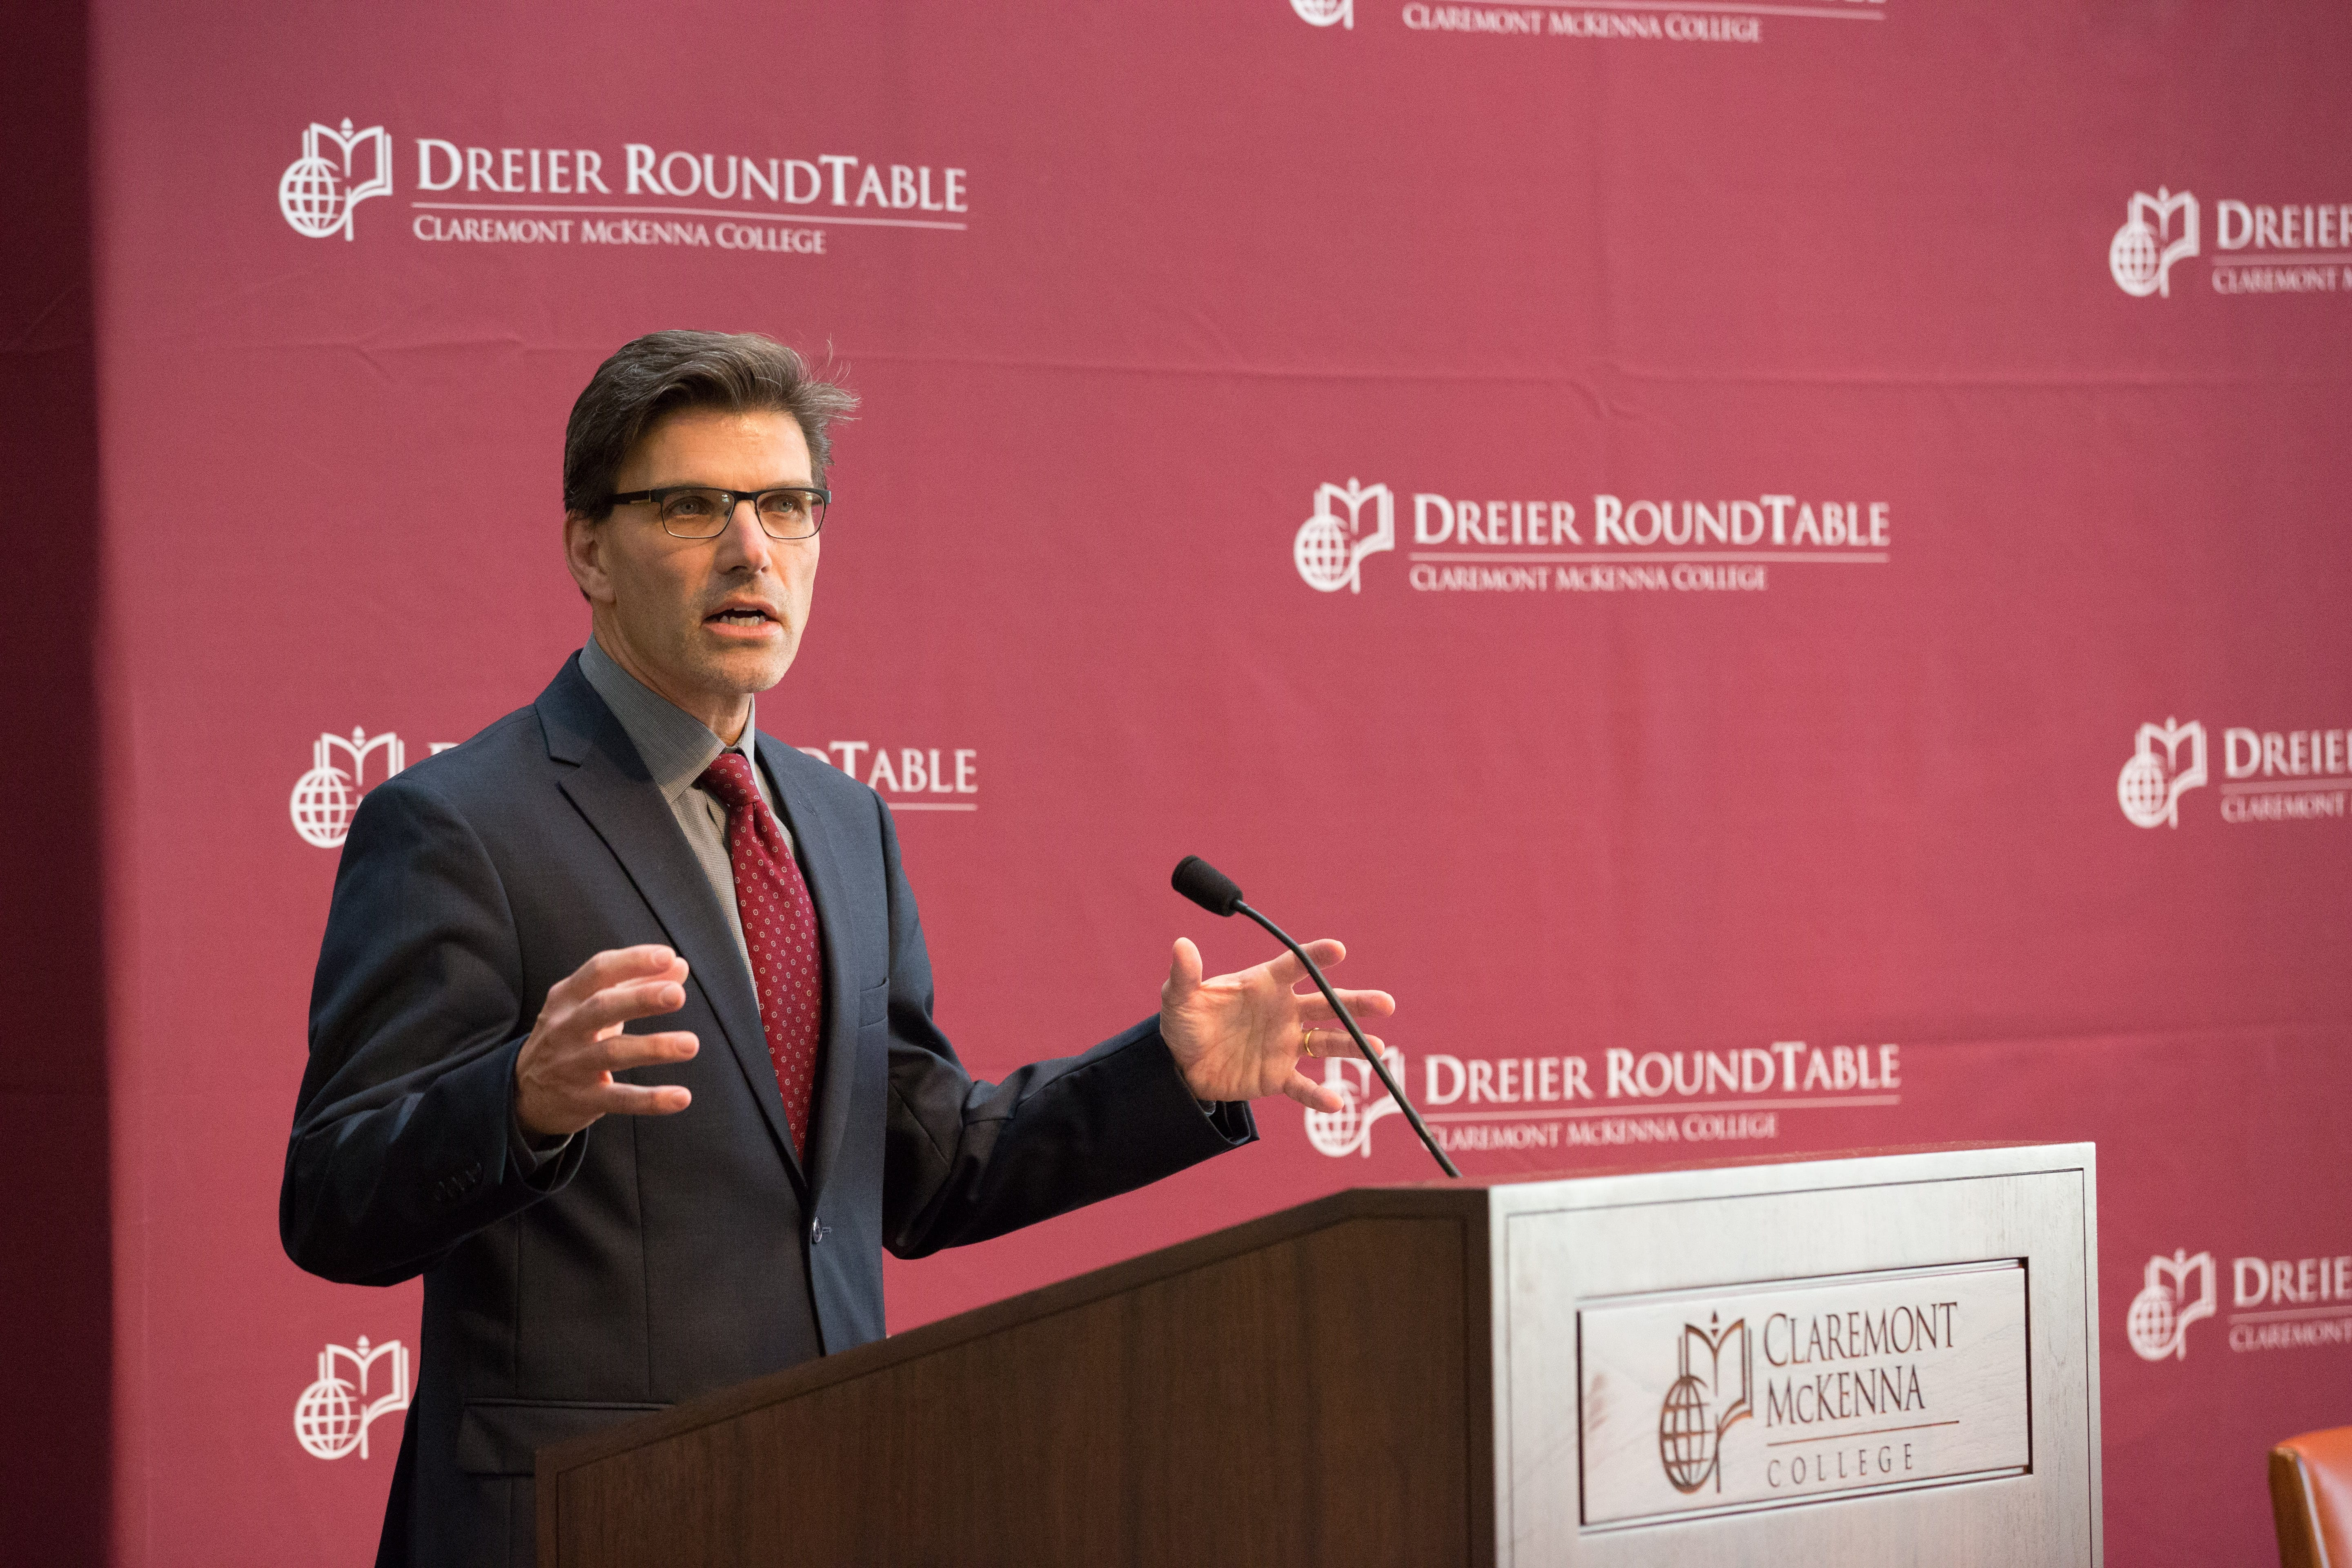 President Hiram Chodosh speaking about the Dreier Roundtable.